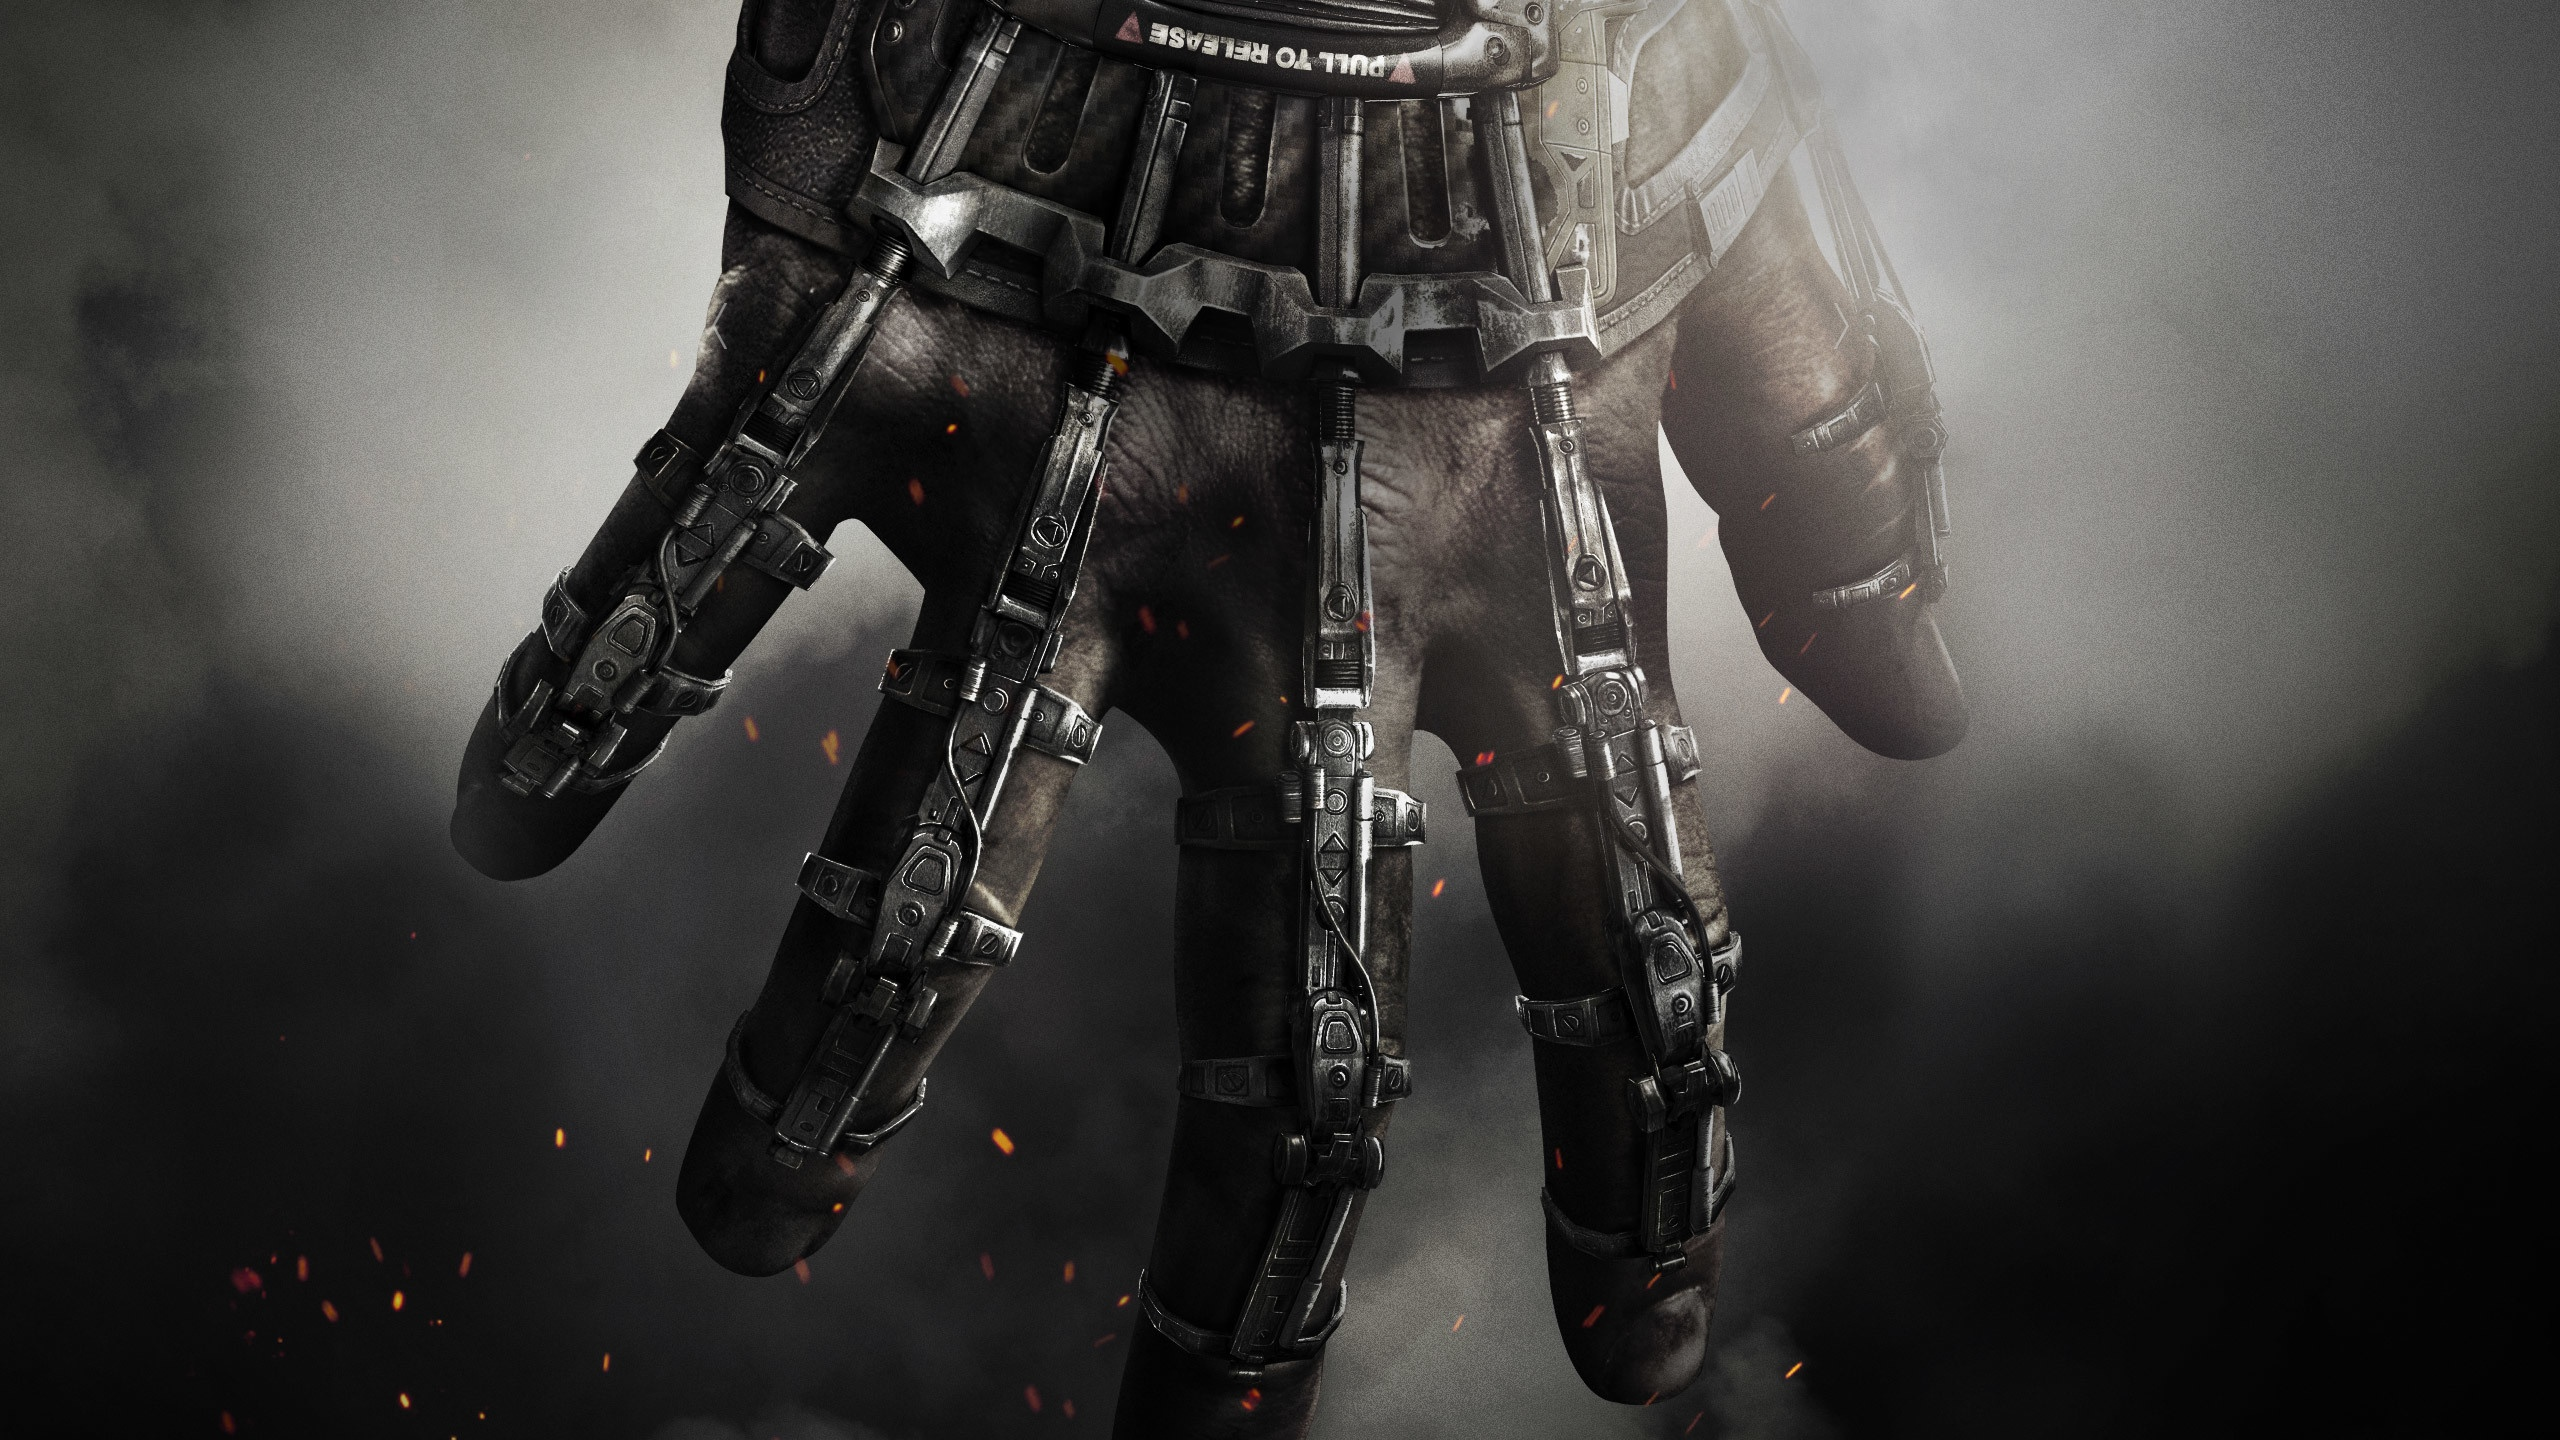 Power Call Of Duty Advanced Warfare Wallpapers 2560x1440 1122909